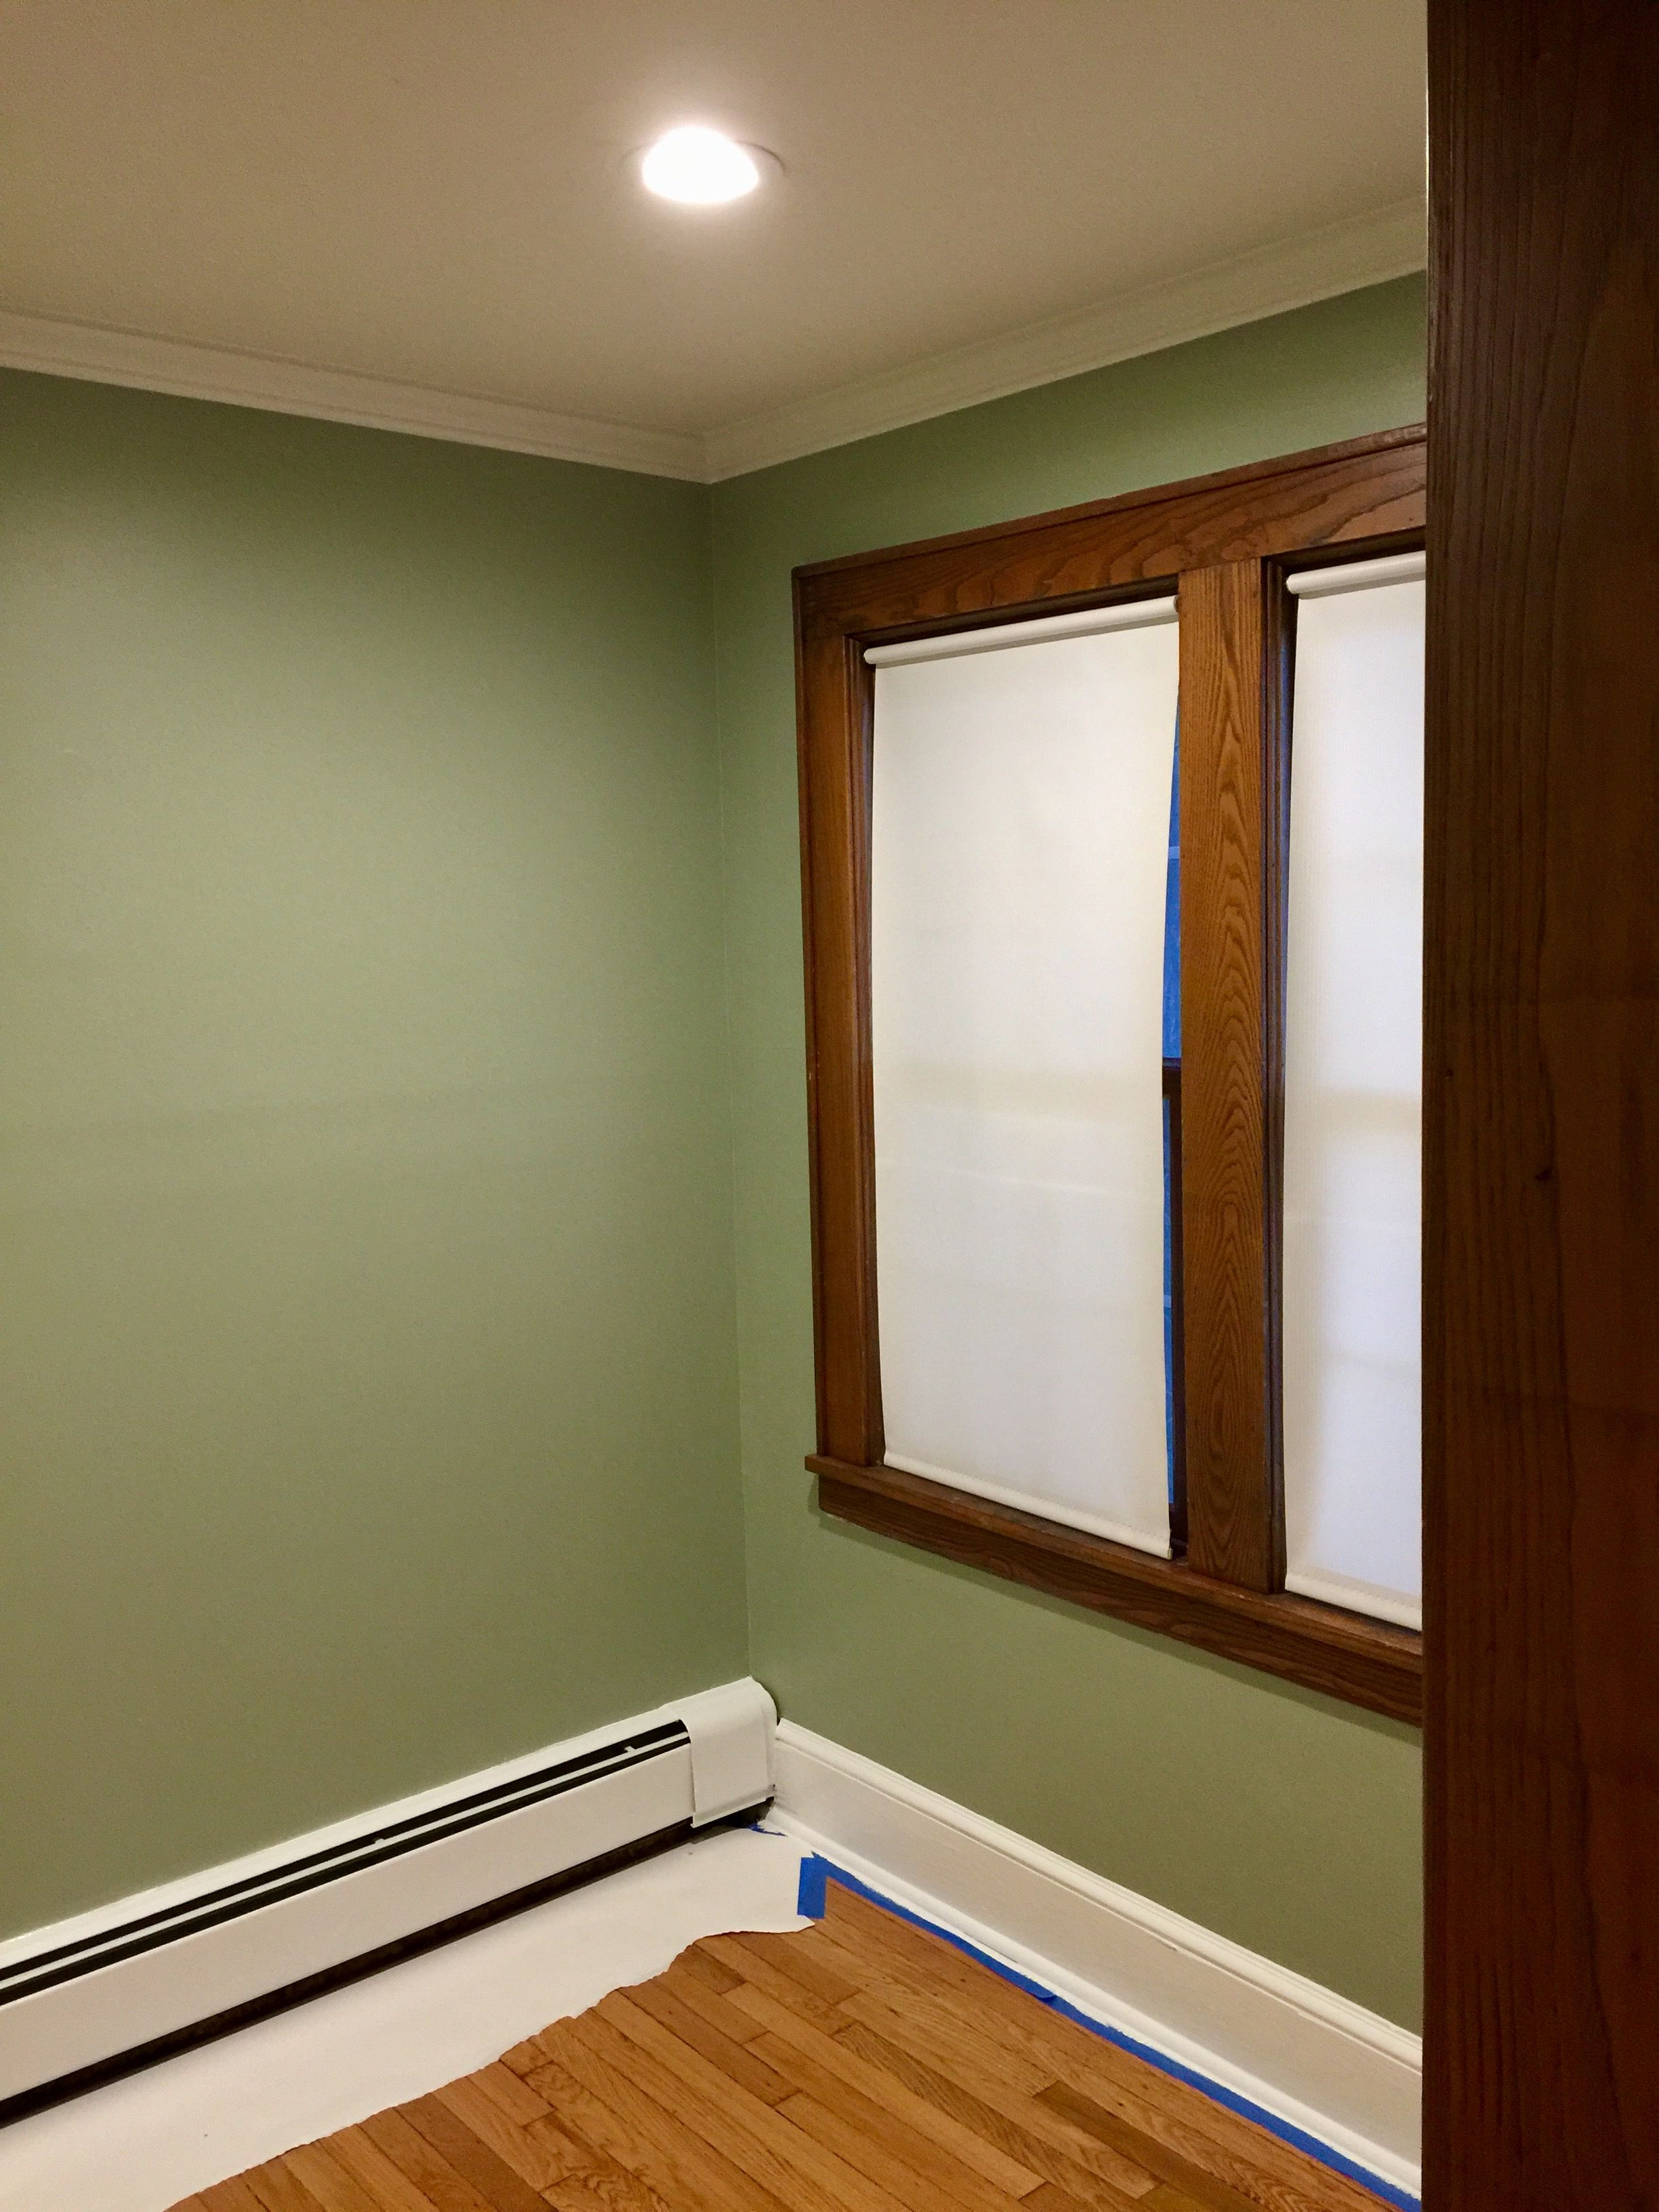 Walls Painted With Sherwin Williams Ovation Clary Sage Stained